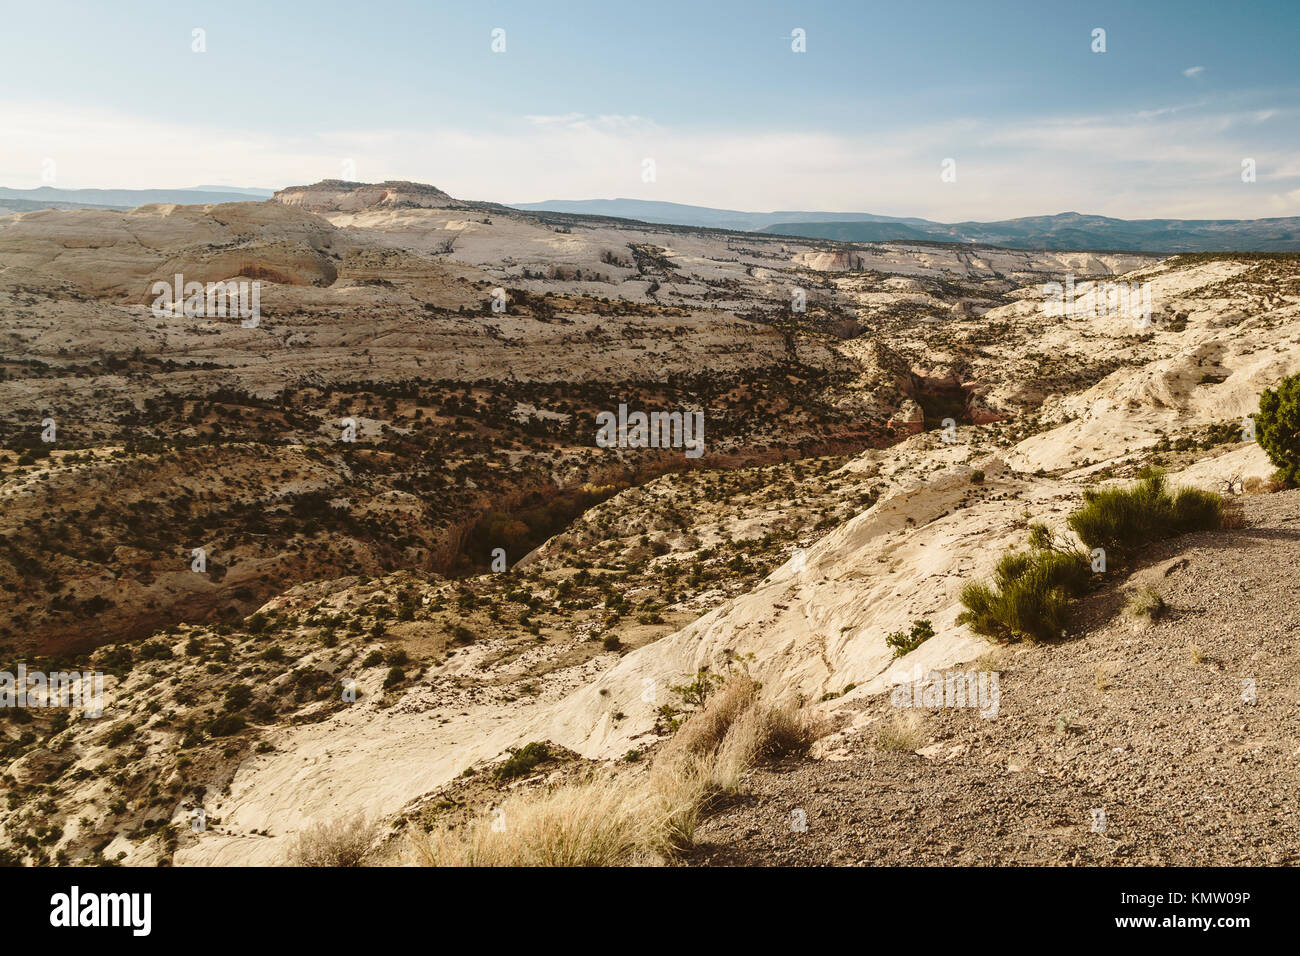 A view of the Grand Staircase–Escalante National Monument landscape in Utah from the top of a vista Stock Photo